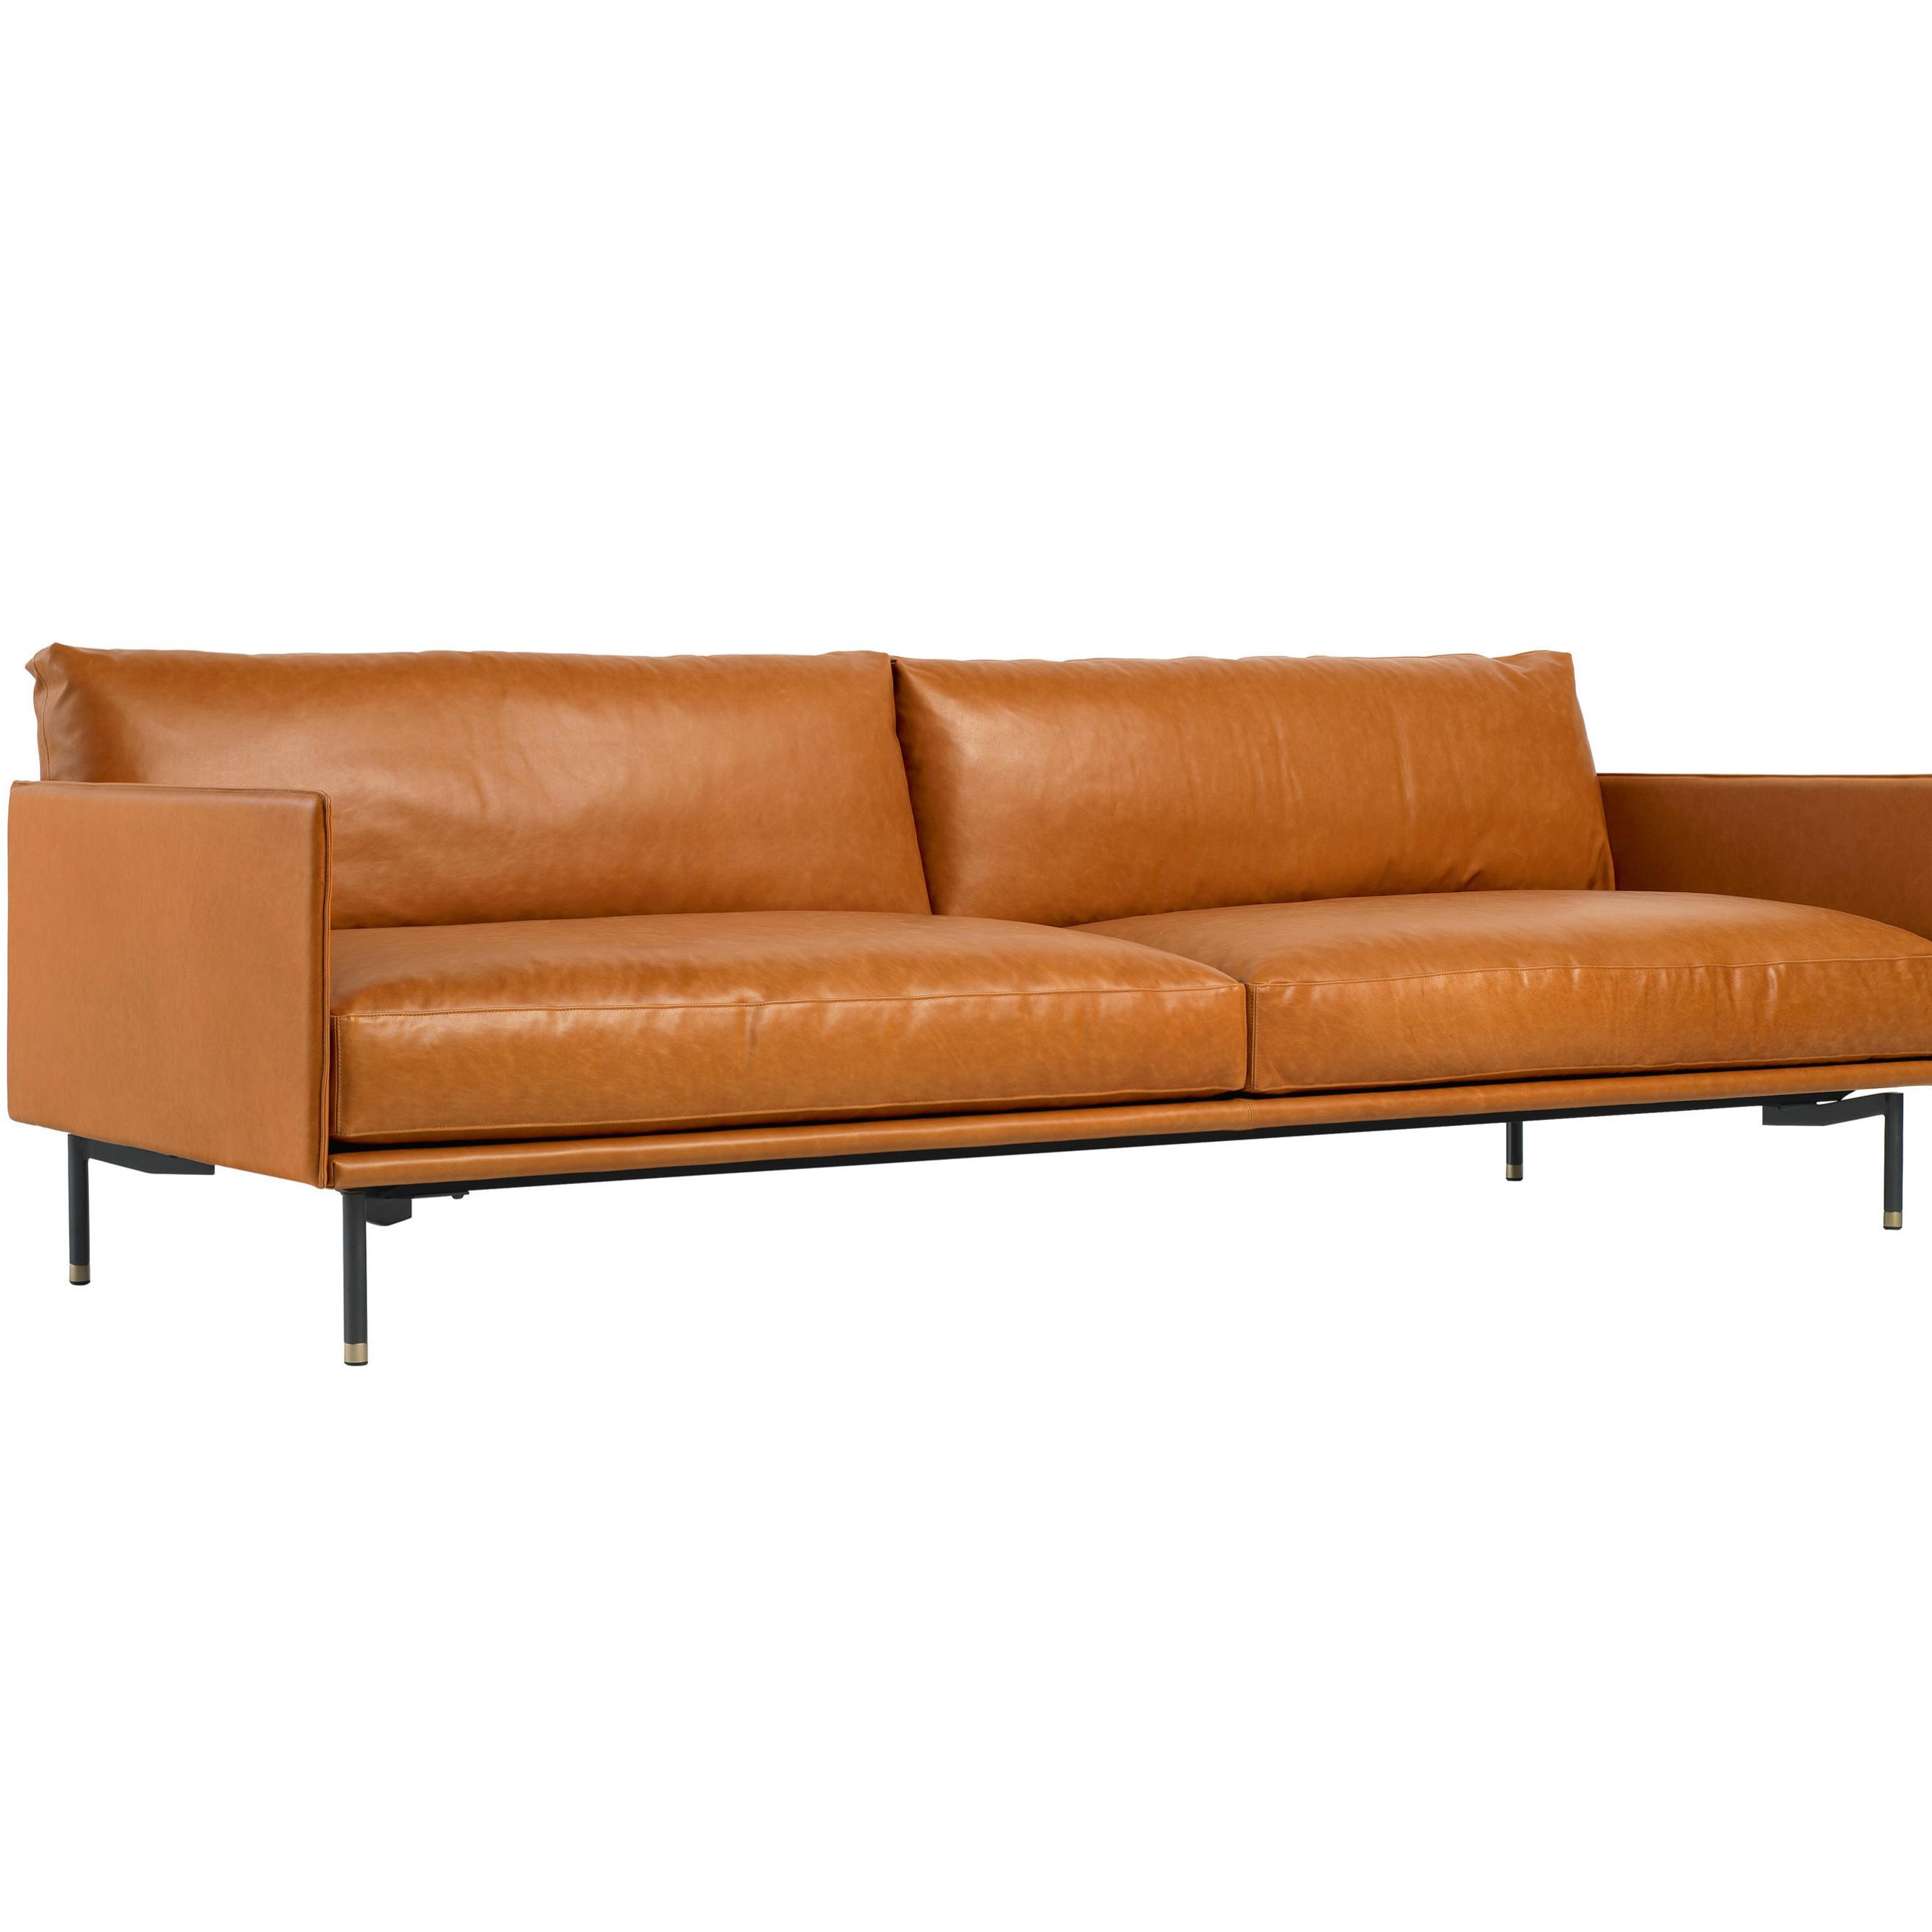 Most Recent Wilton Fabric Sectional Sofas Pertaining To Wilton Sofa – Sofas From Frag (View 2 of 25)